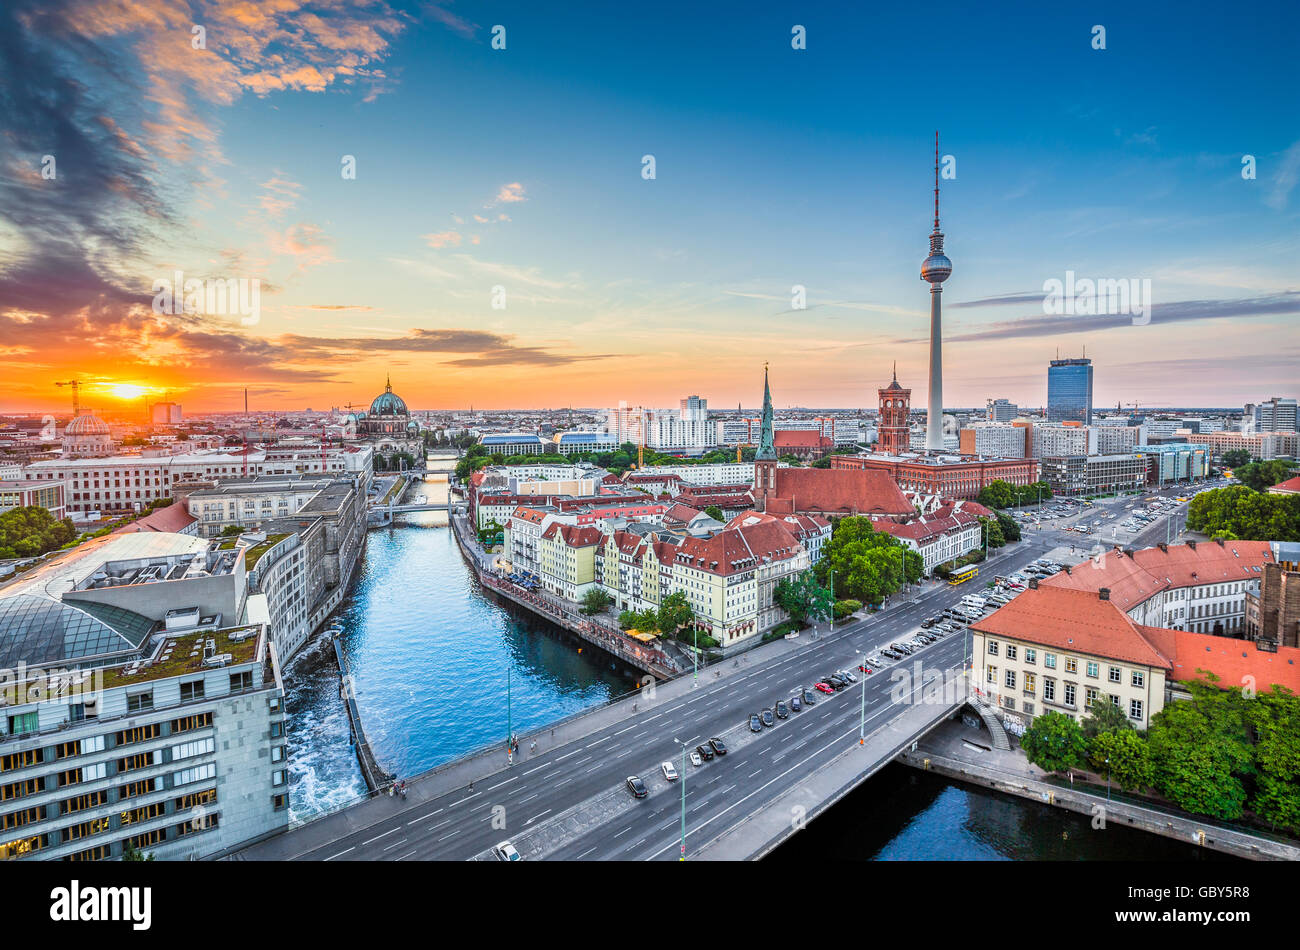 Aerial view of Berlin skyline with famous TV tower and Spree river in beautiful evening light at sunset, Germany - Stock Image